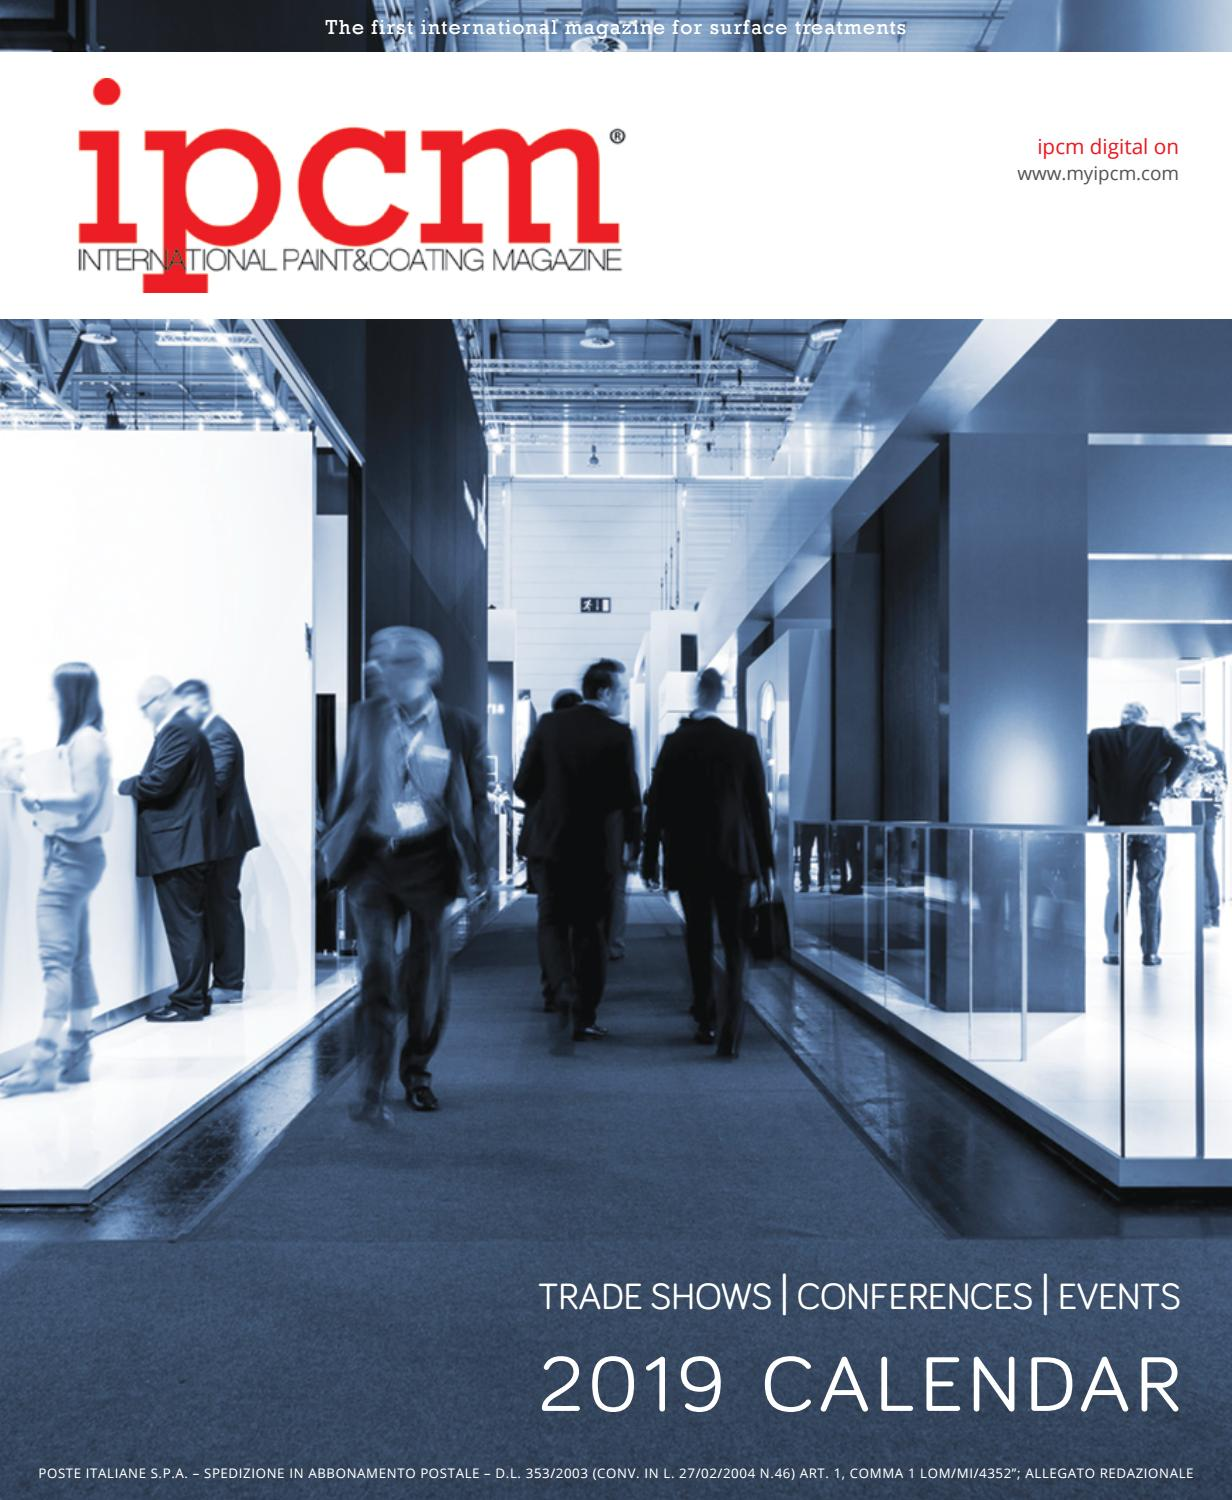 Exhibition & Conference Guide 2019 by ipcm® International